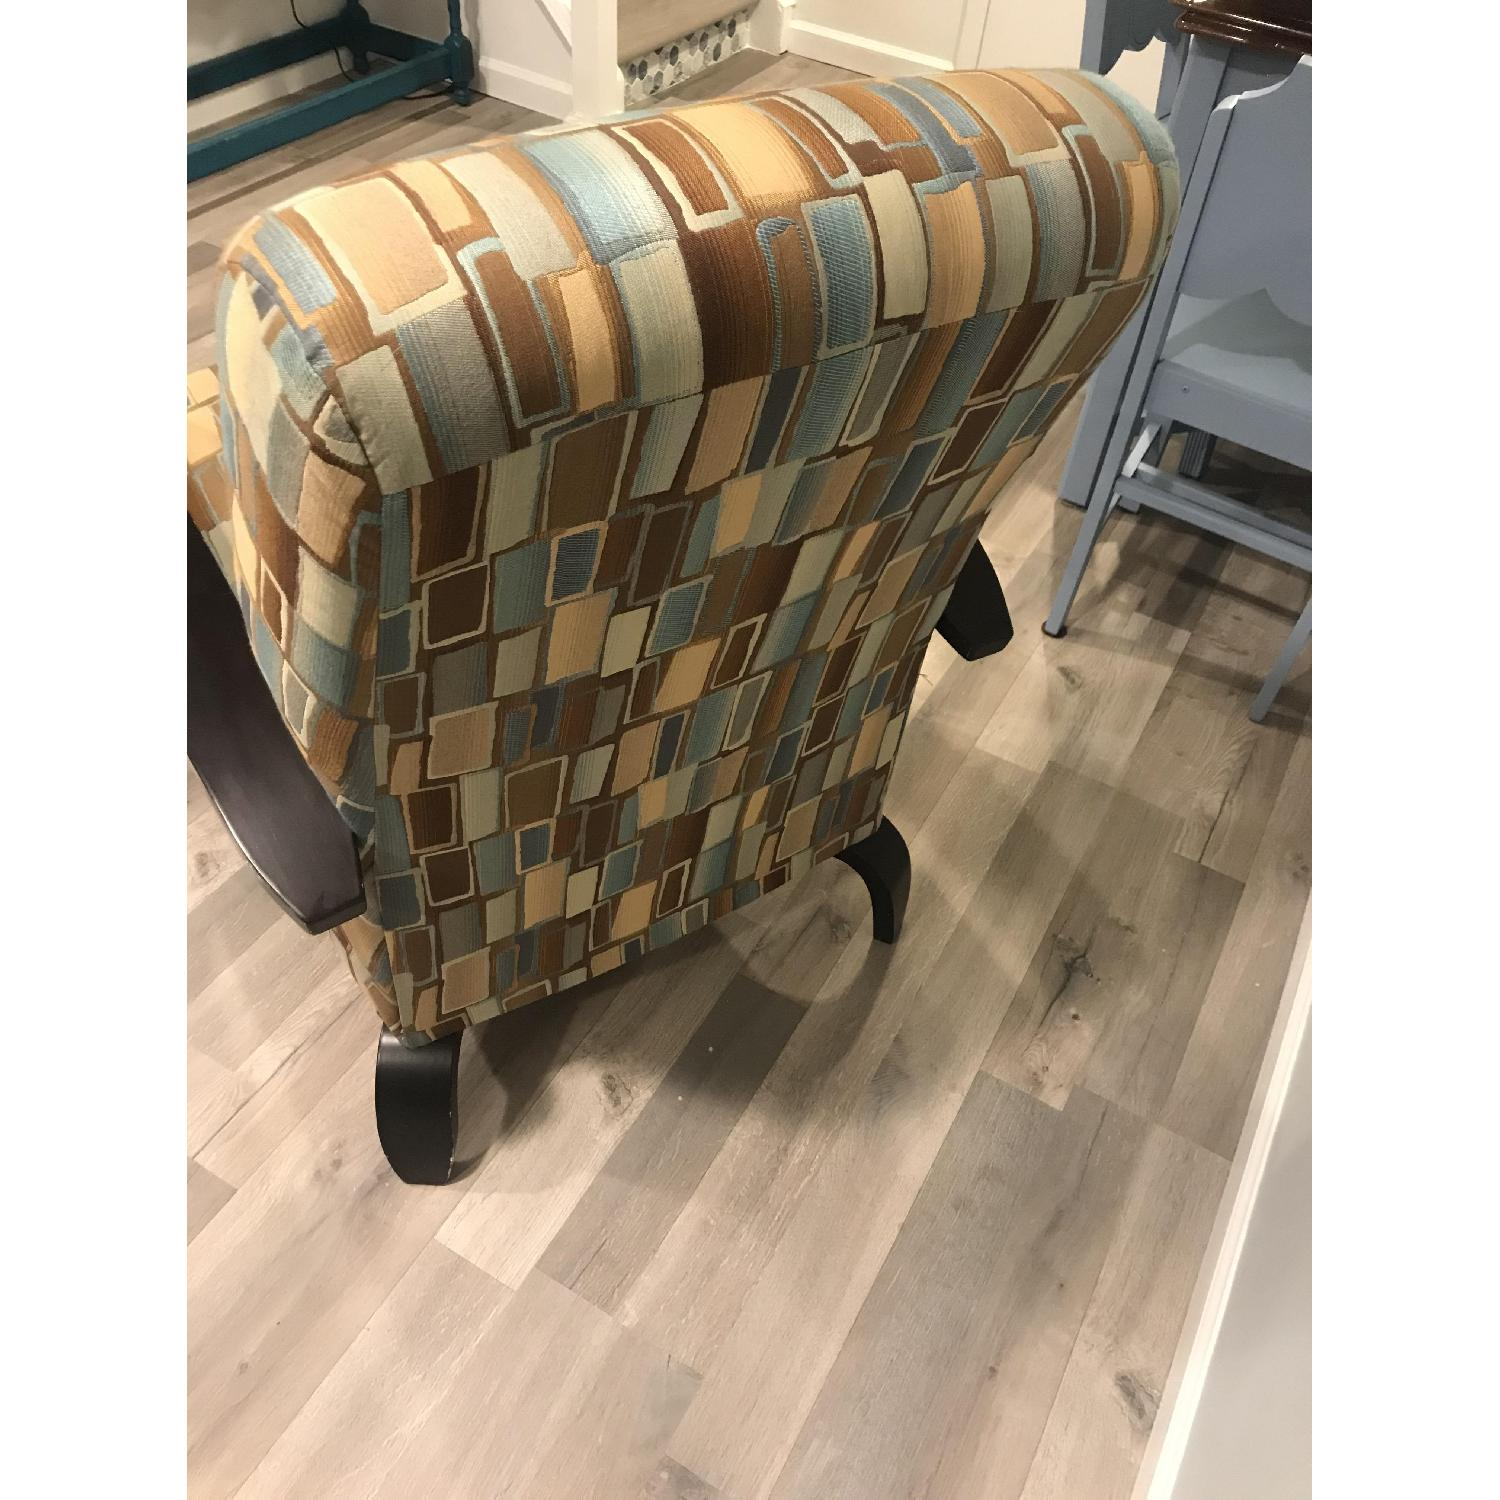 Wood & Fabric Upholstered Chairs - image-4